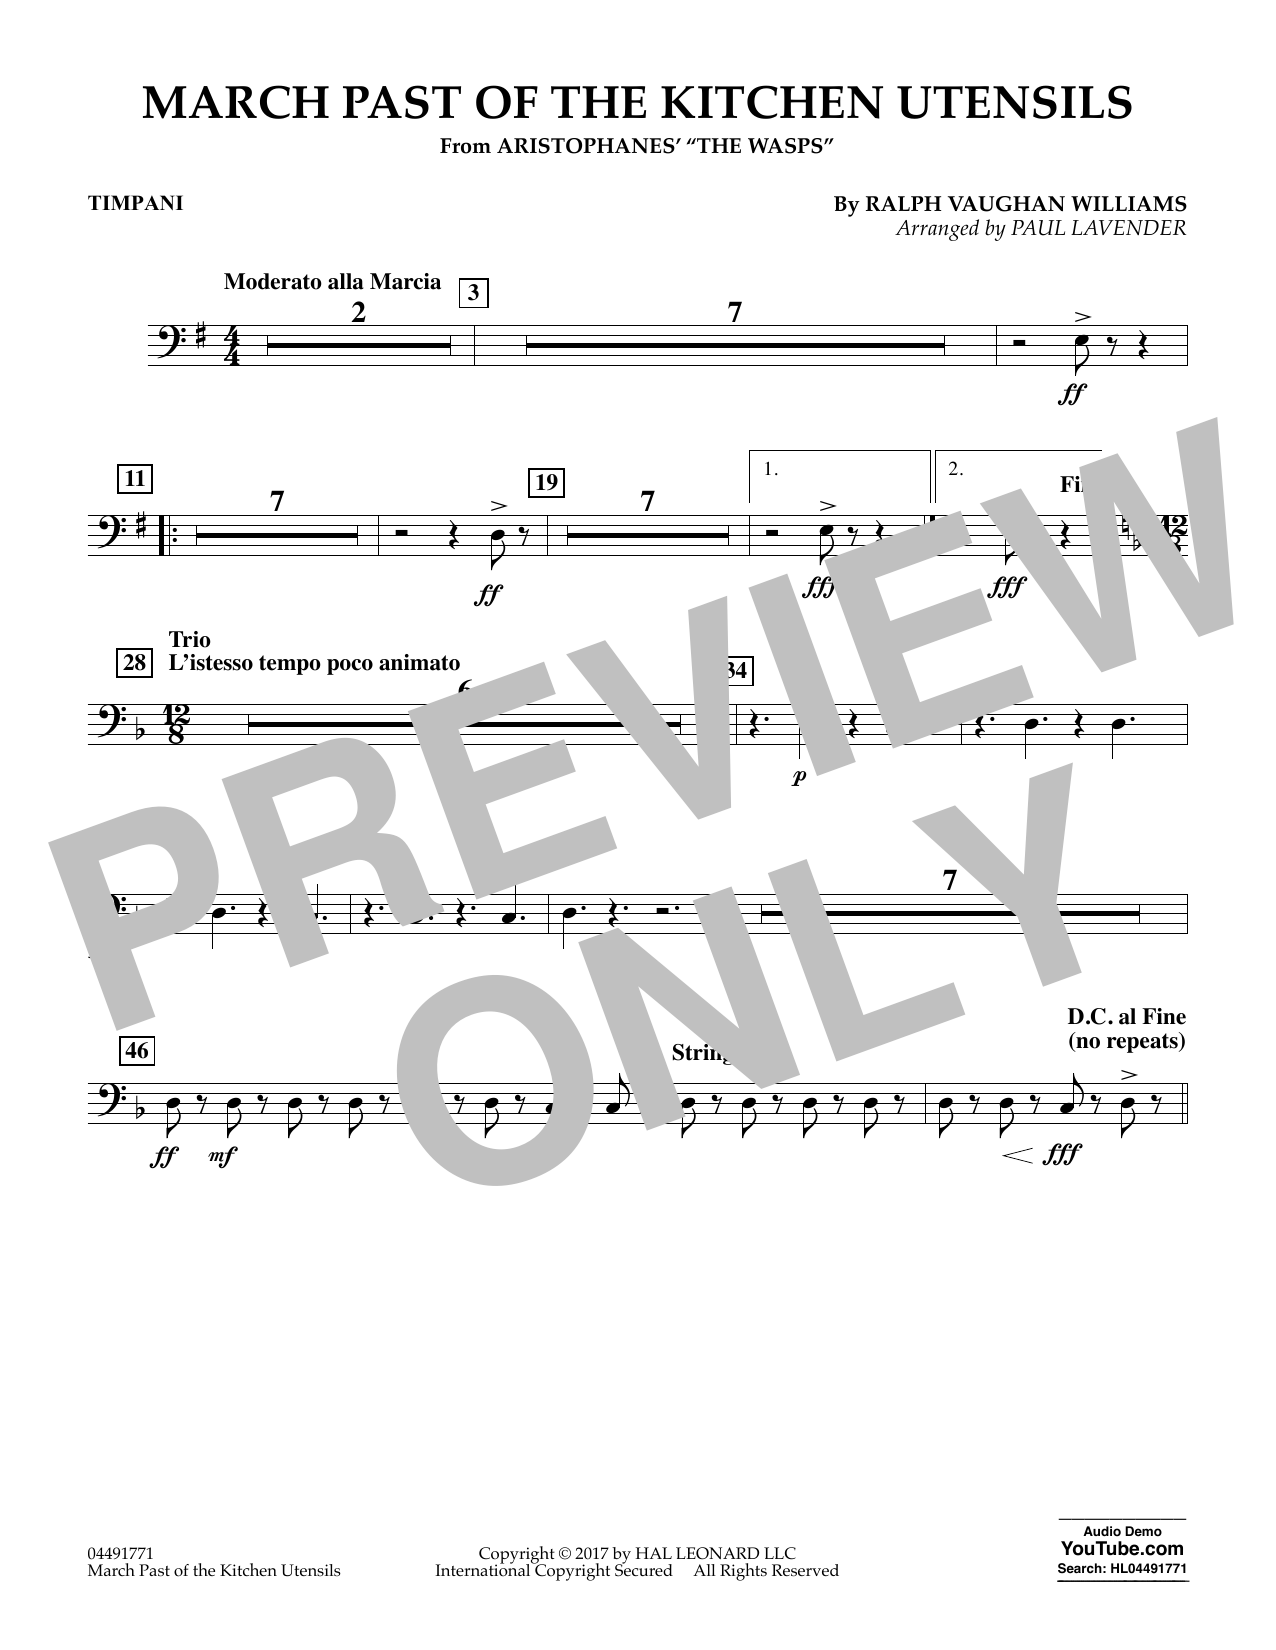 Paul Lavender March Past of the Kitchen Utensils (from The Wasps) - Timpani sheet music notes and chords. Download Printable PDF.